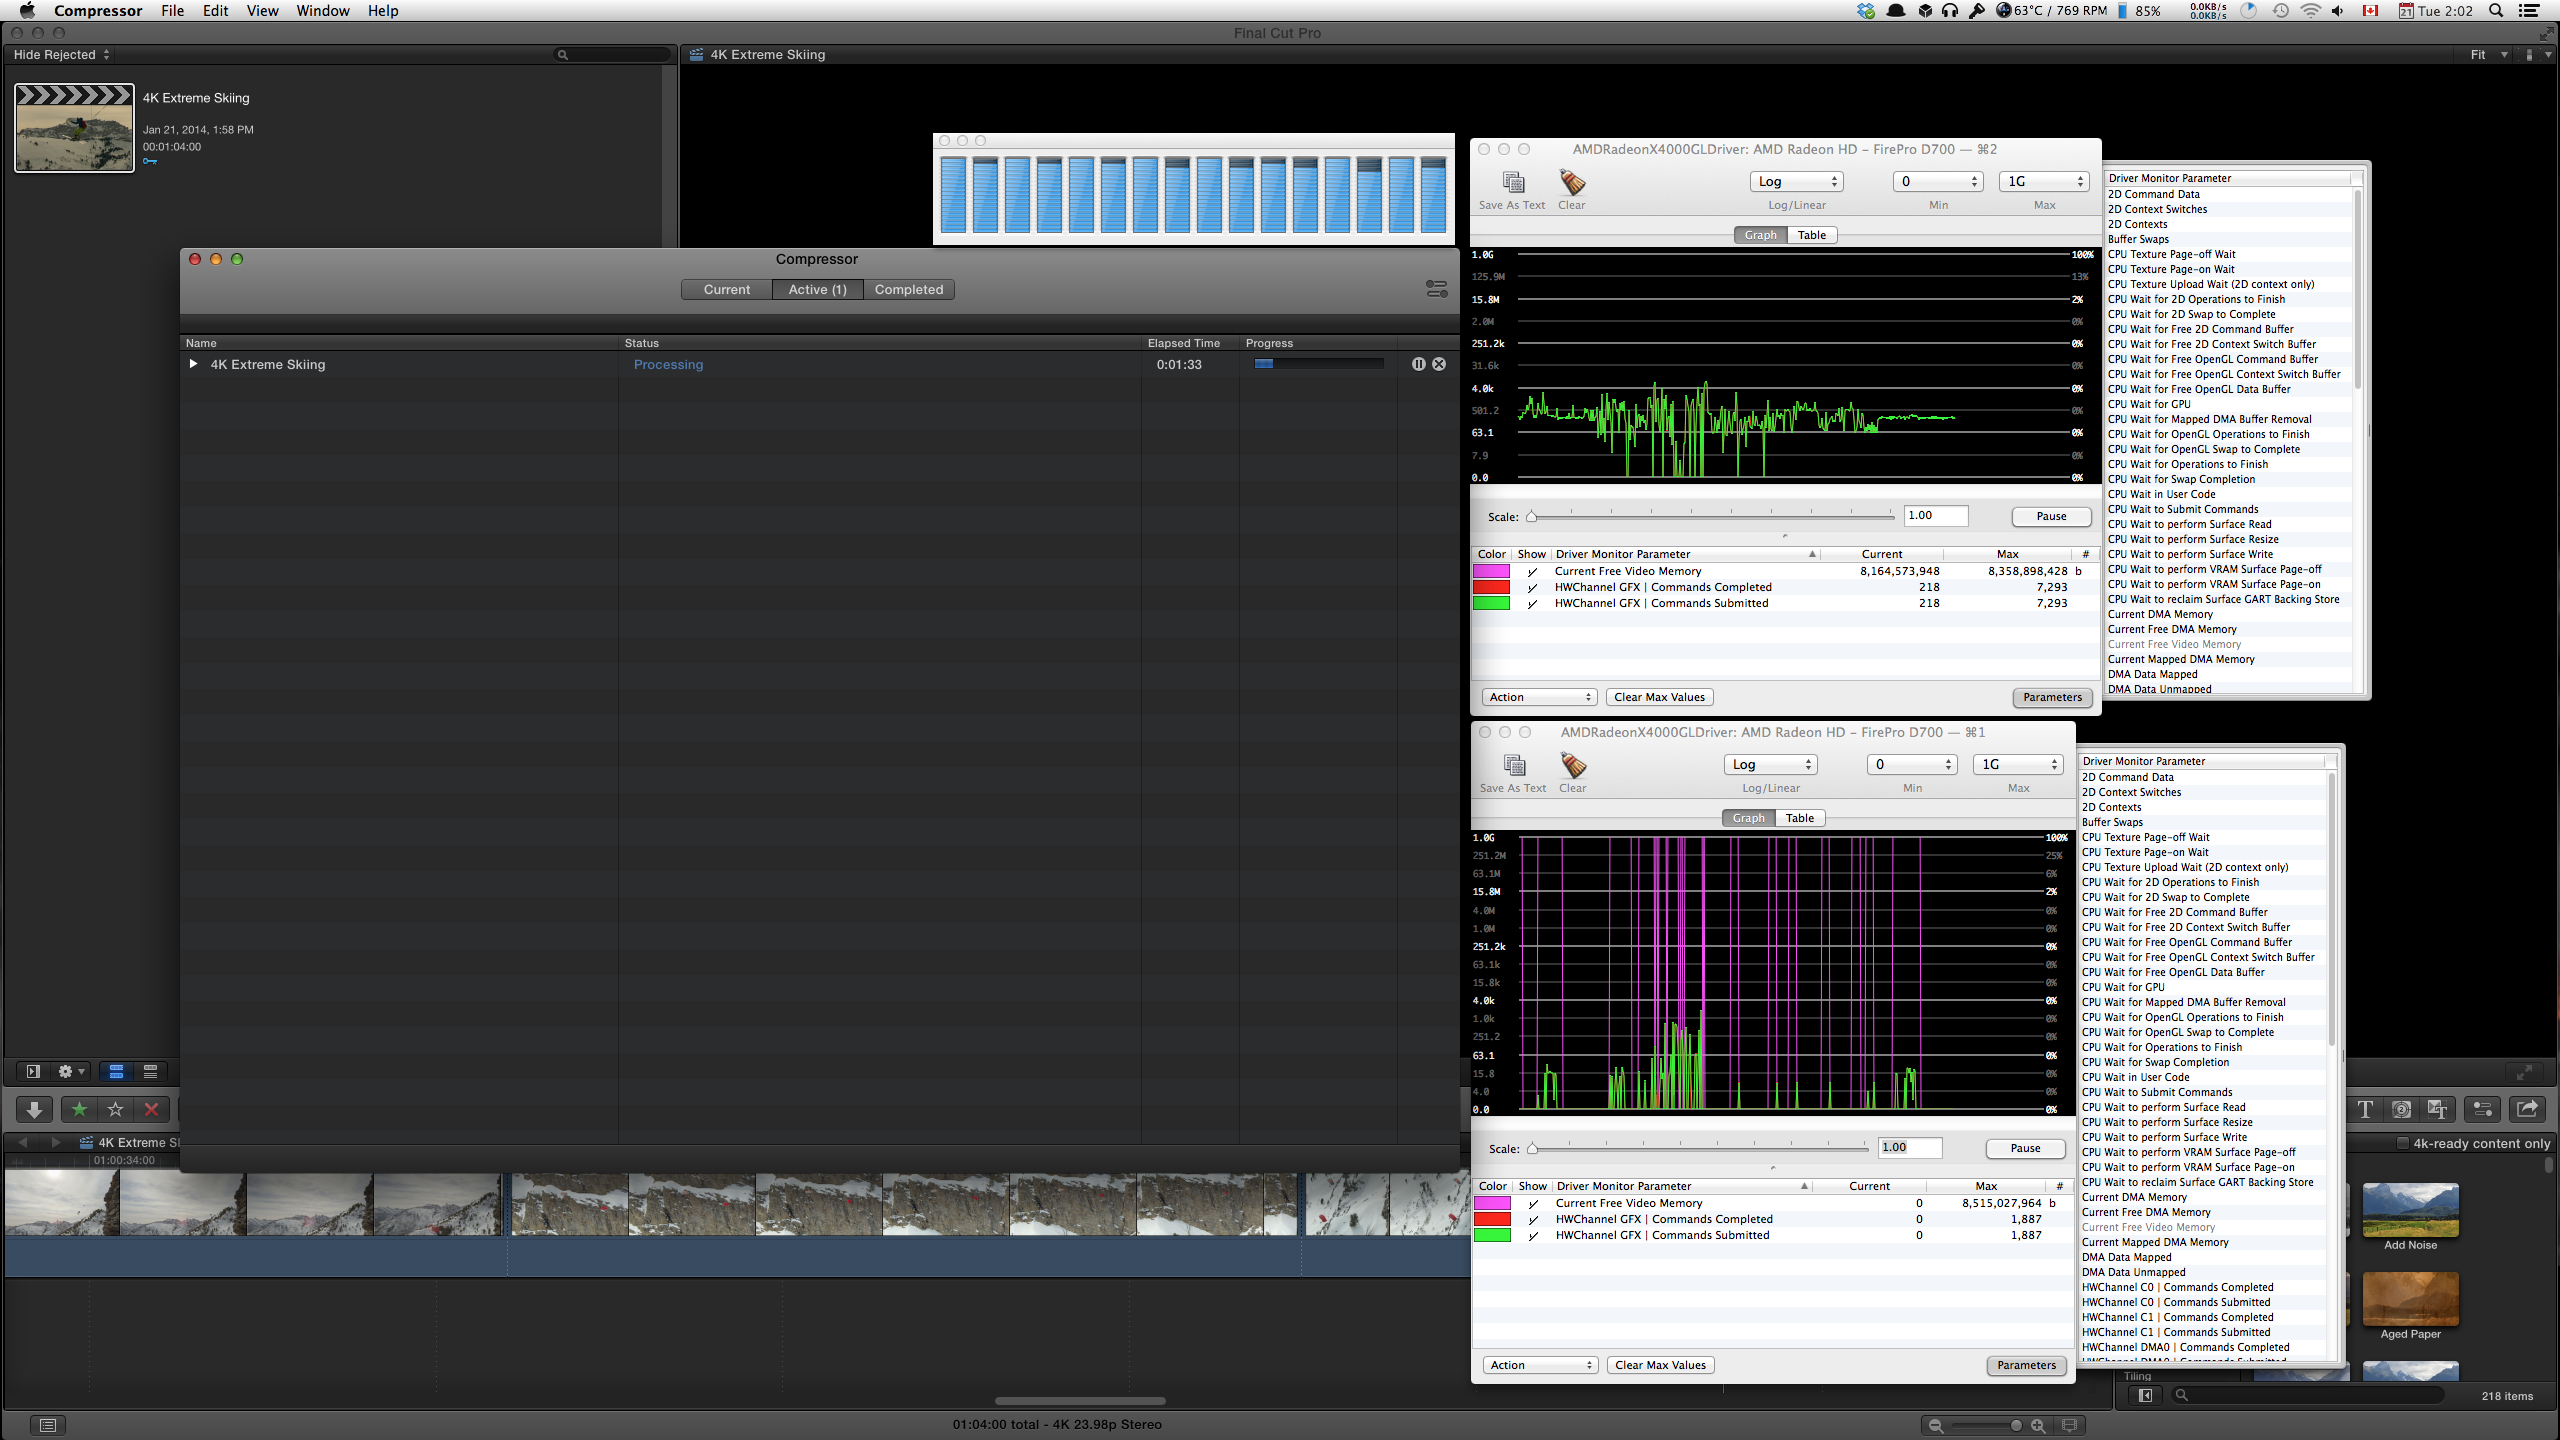 All cores of the CPU and both GPUs chipping in to handle our heavily filtered 4K media.